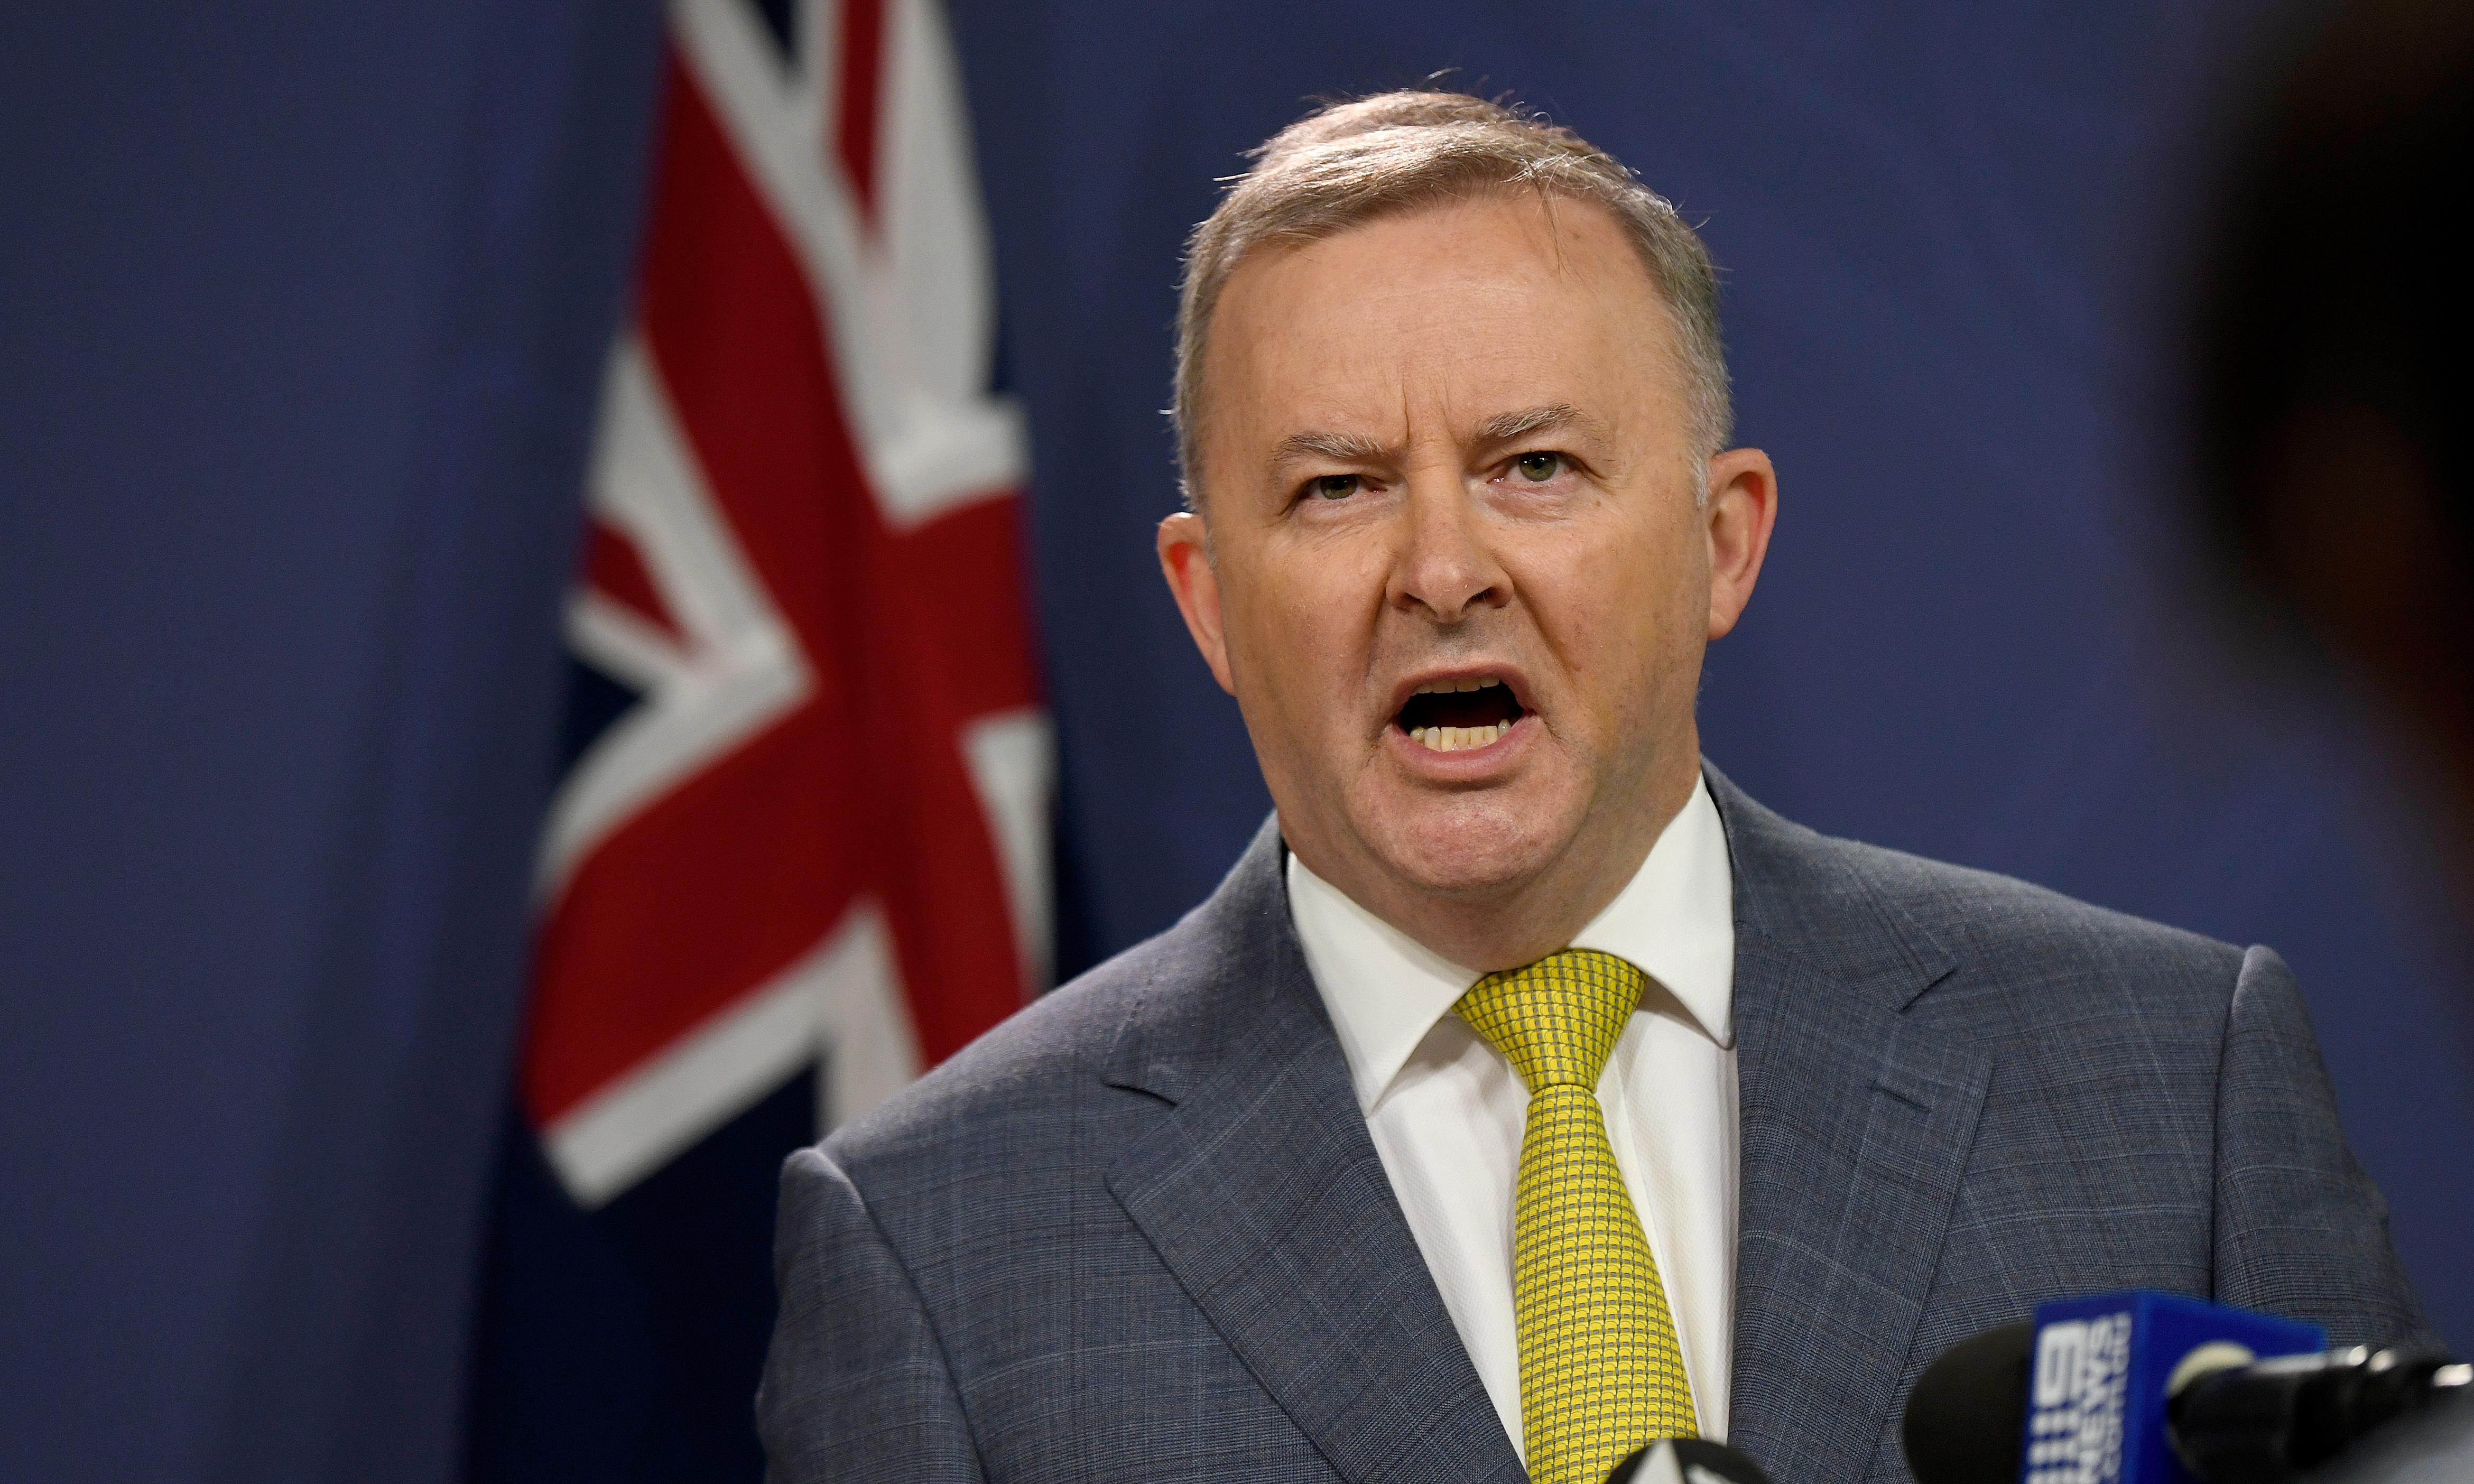 Anthony Albanese flags 'ambitious' emissions target but won't recommit to 45% reduction